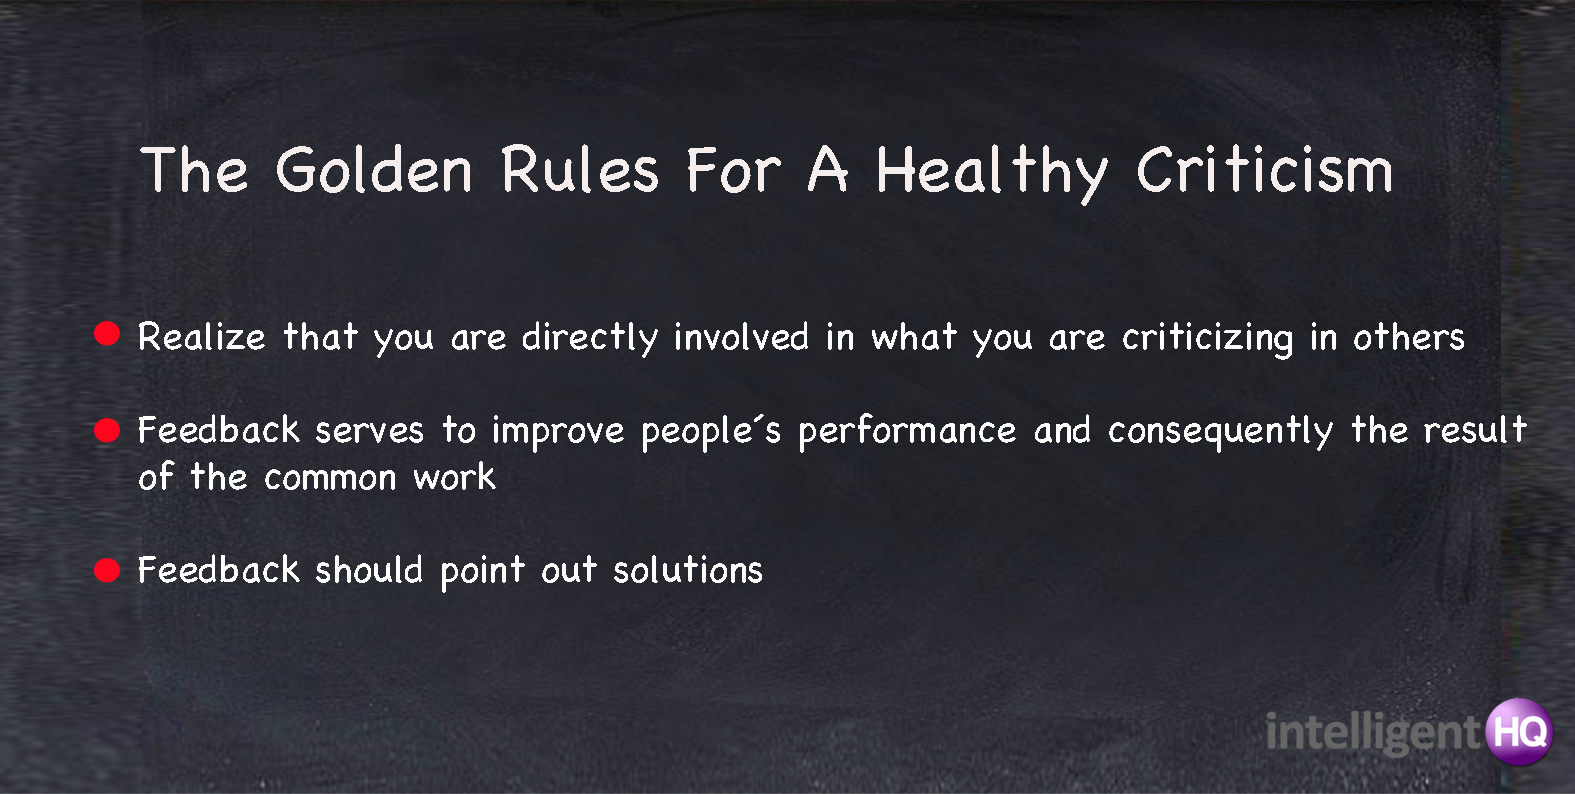 The golden rules for a healthy criticism Intelligenthq